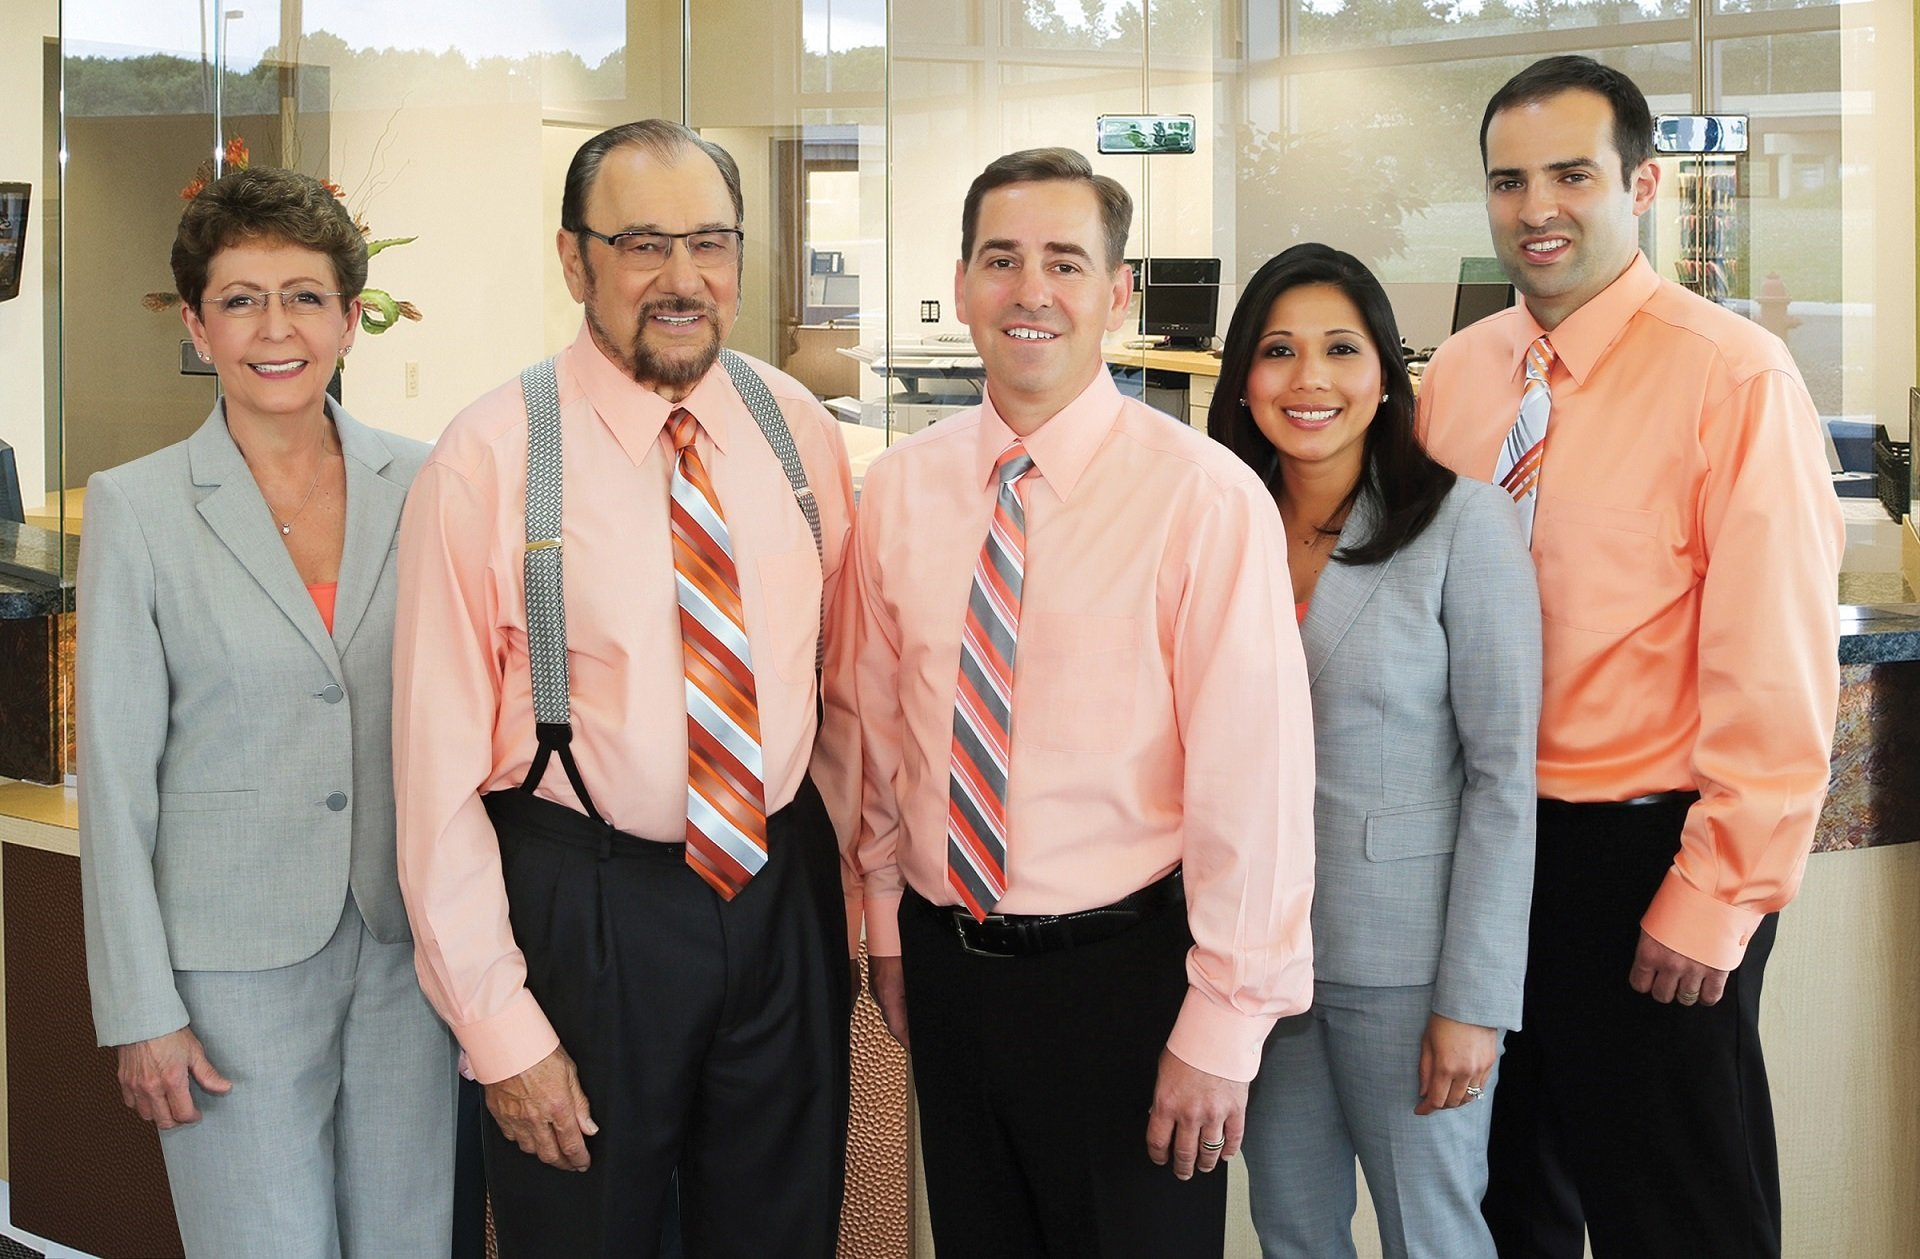 Team of Family Dentists Serving Greater Akron and Canton, Ohio Area